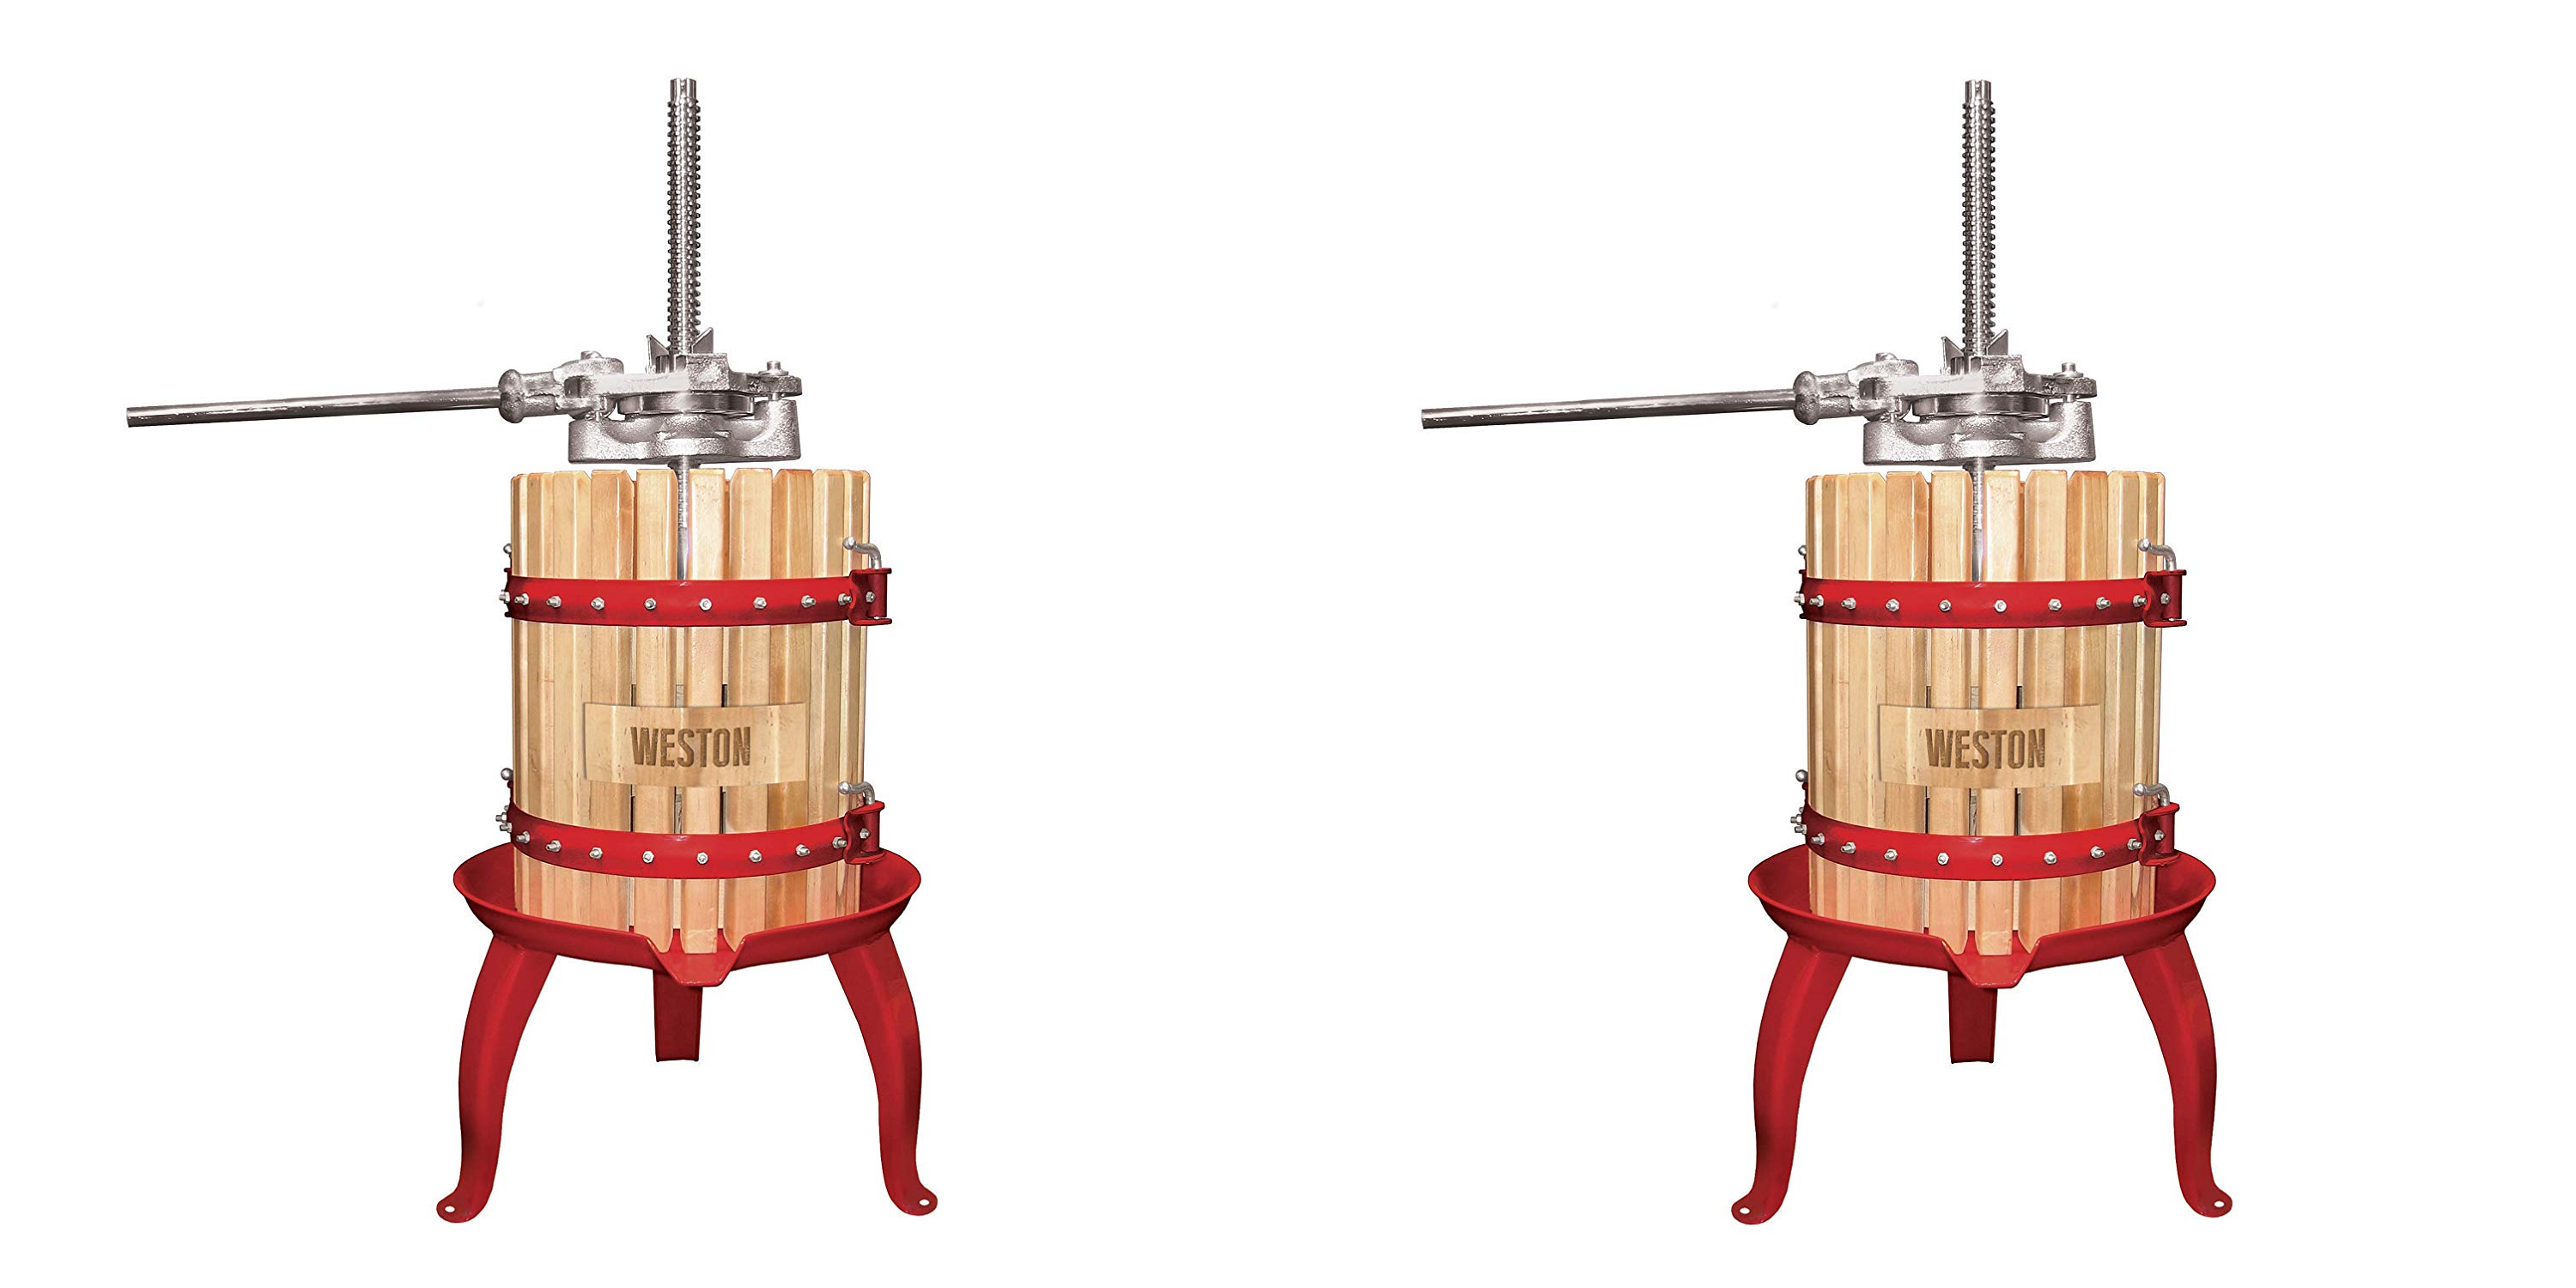 Enjoy homemade juice & wine w/ this Weston Fruit Press at $160 (Reg. $250+)